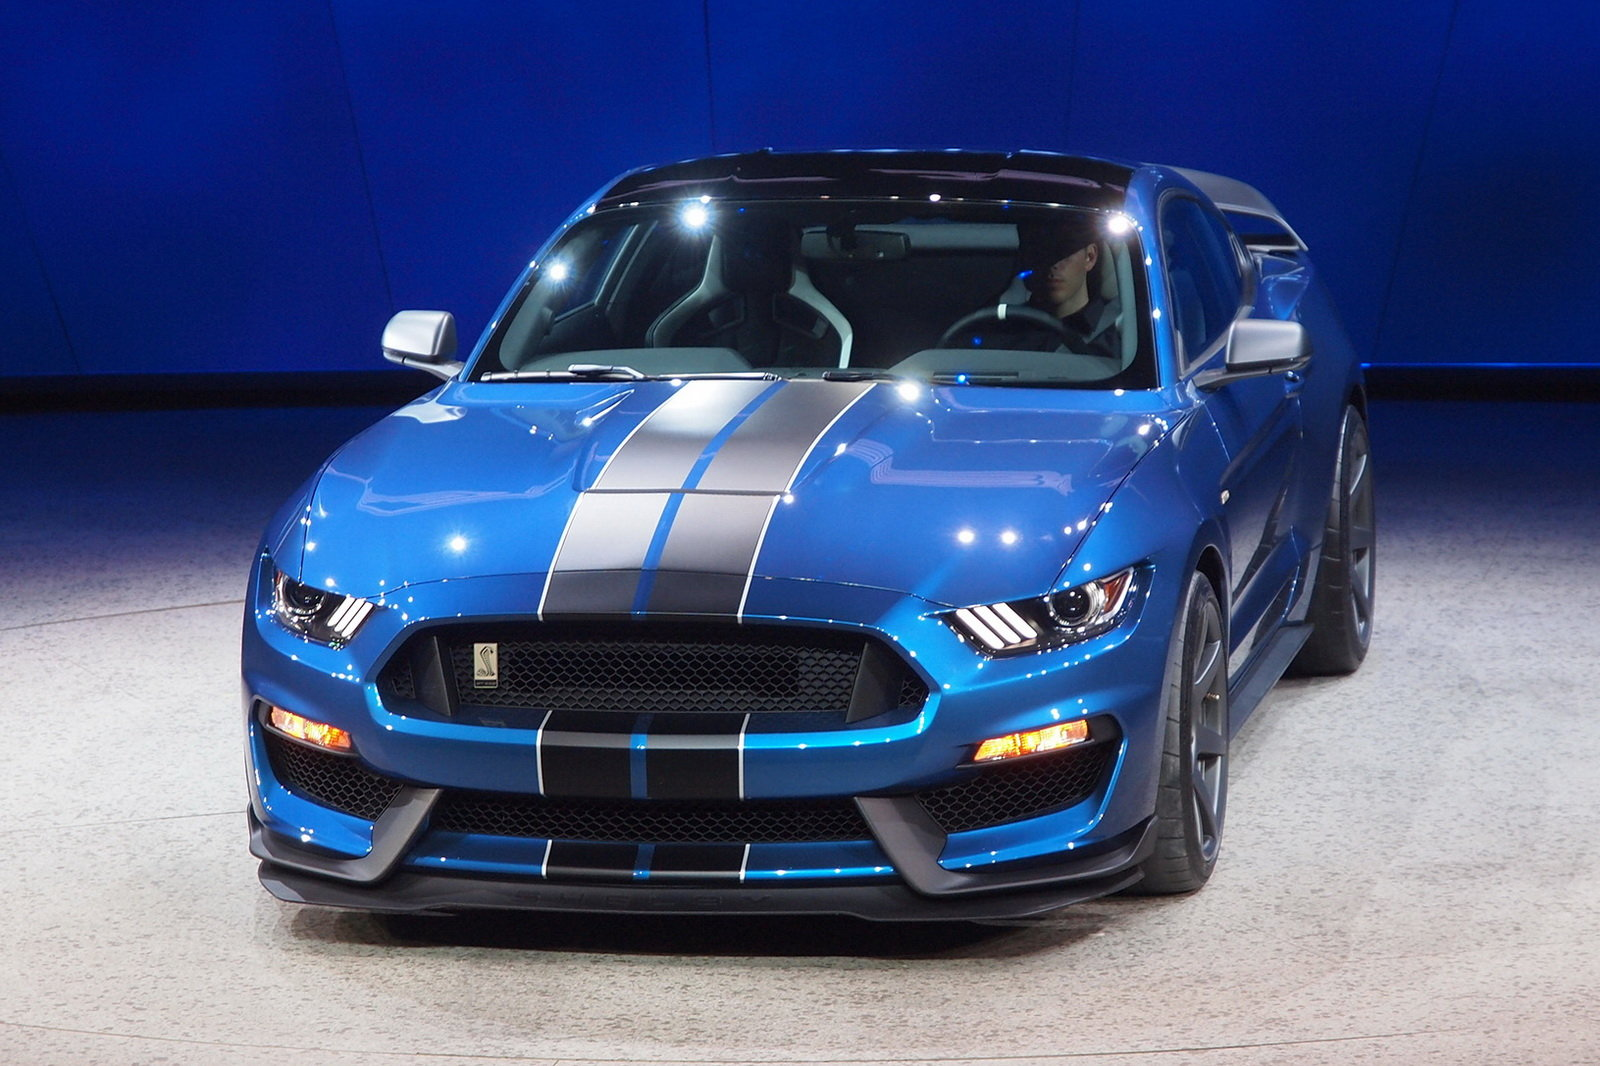 2016 Ford Mustang Shelby Gt350r Front Details (Photo 32 of 47)